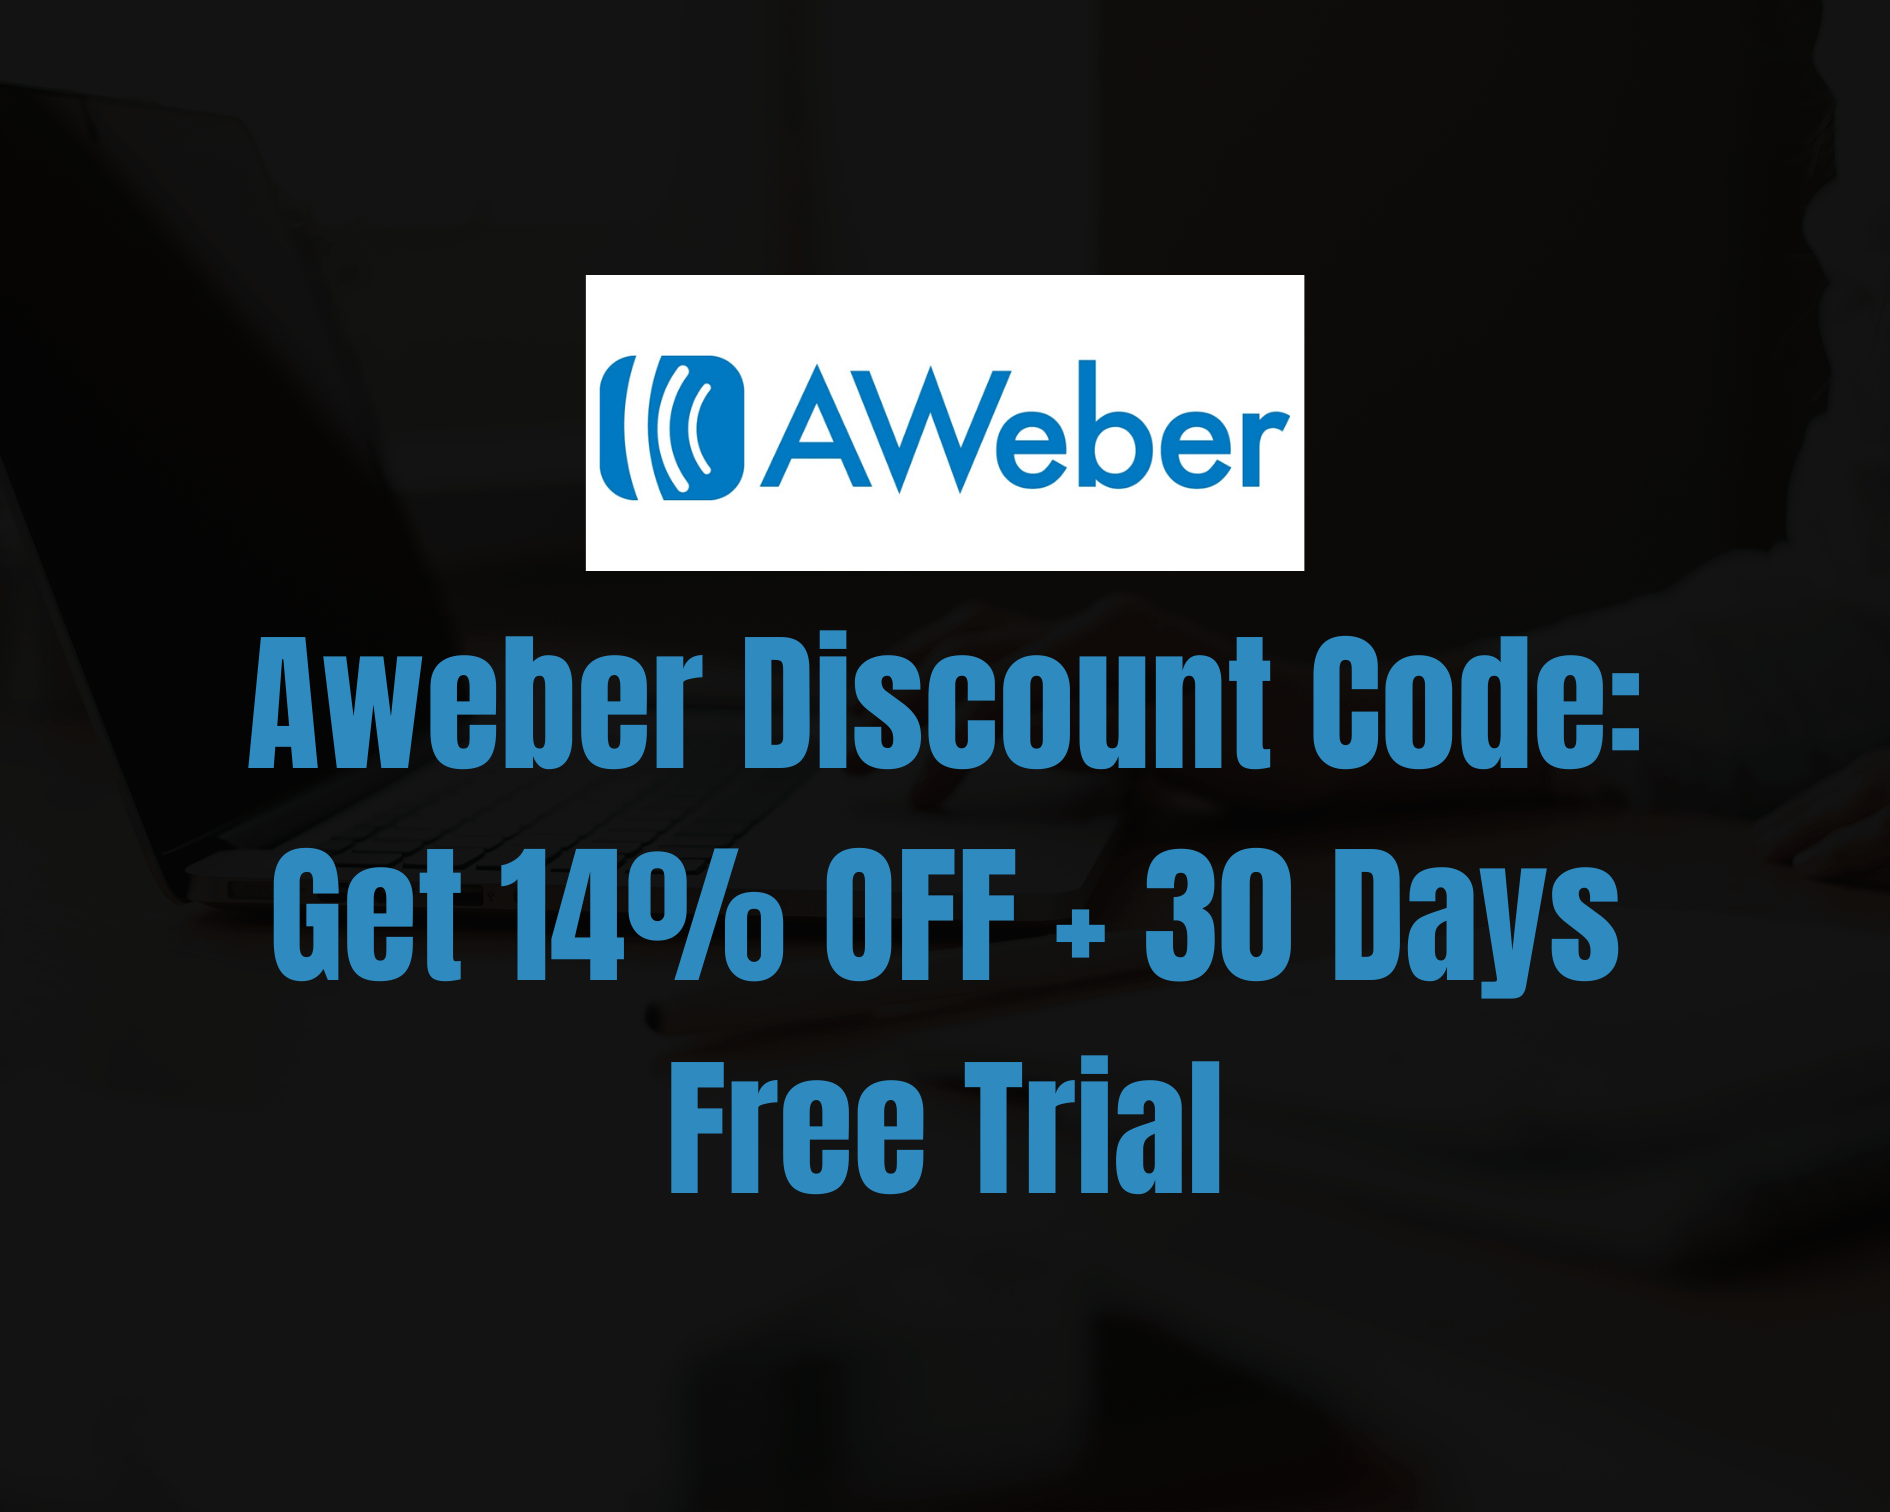 Aweber Discount Code: Get 14% OFF + 30 Days Free Trial